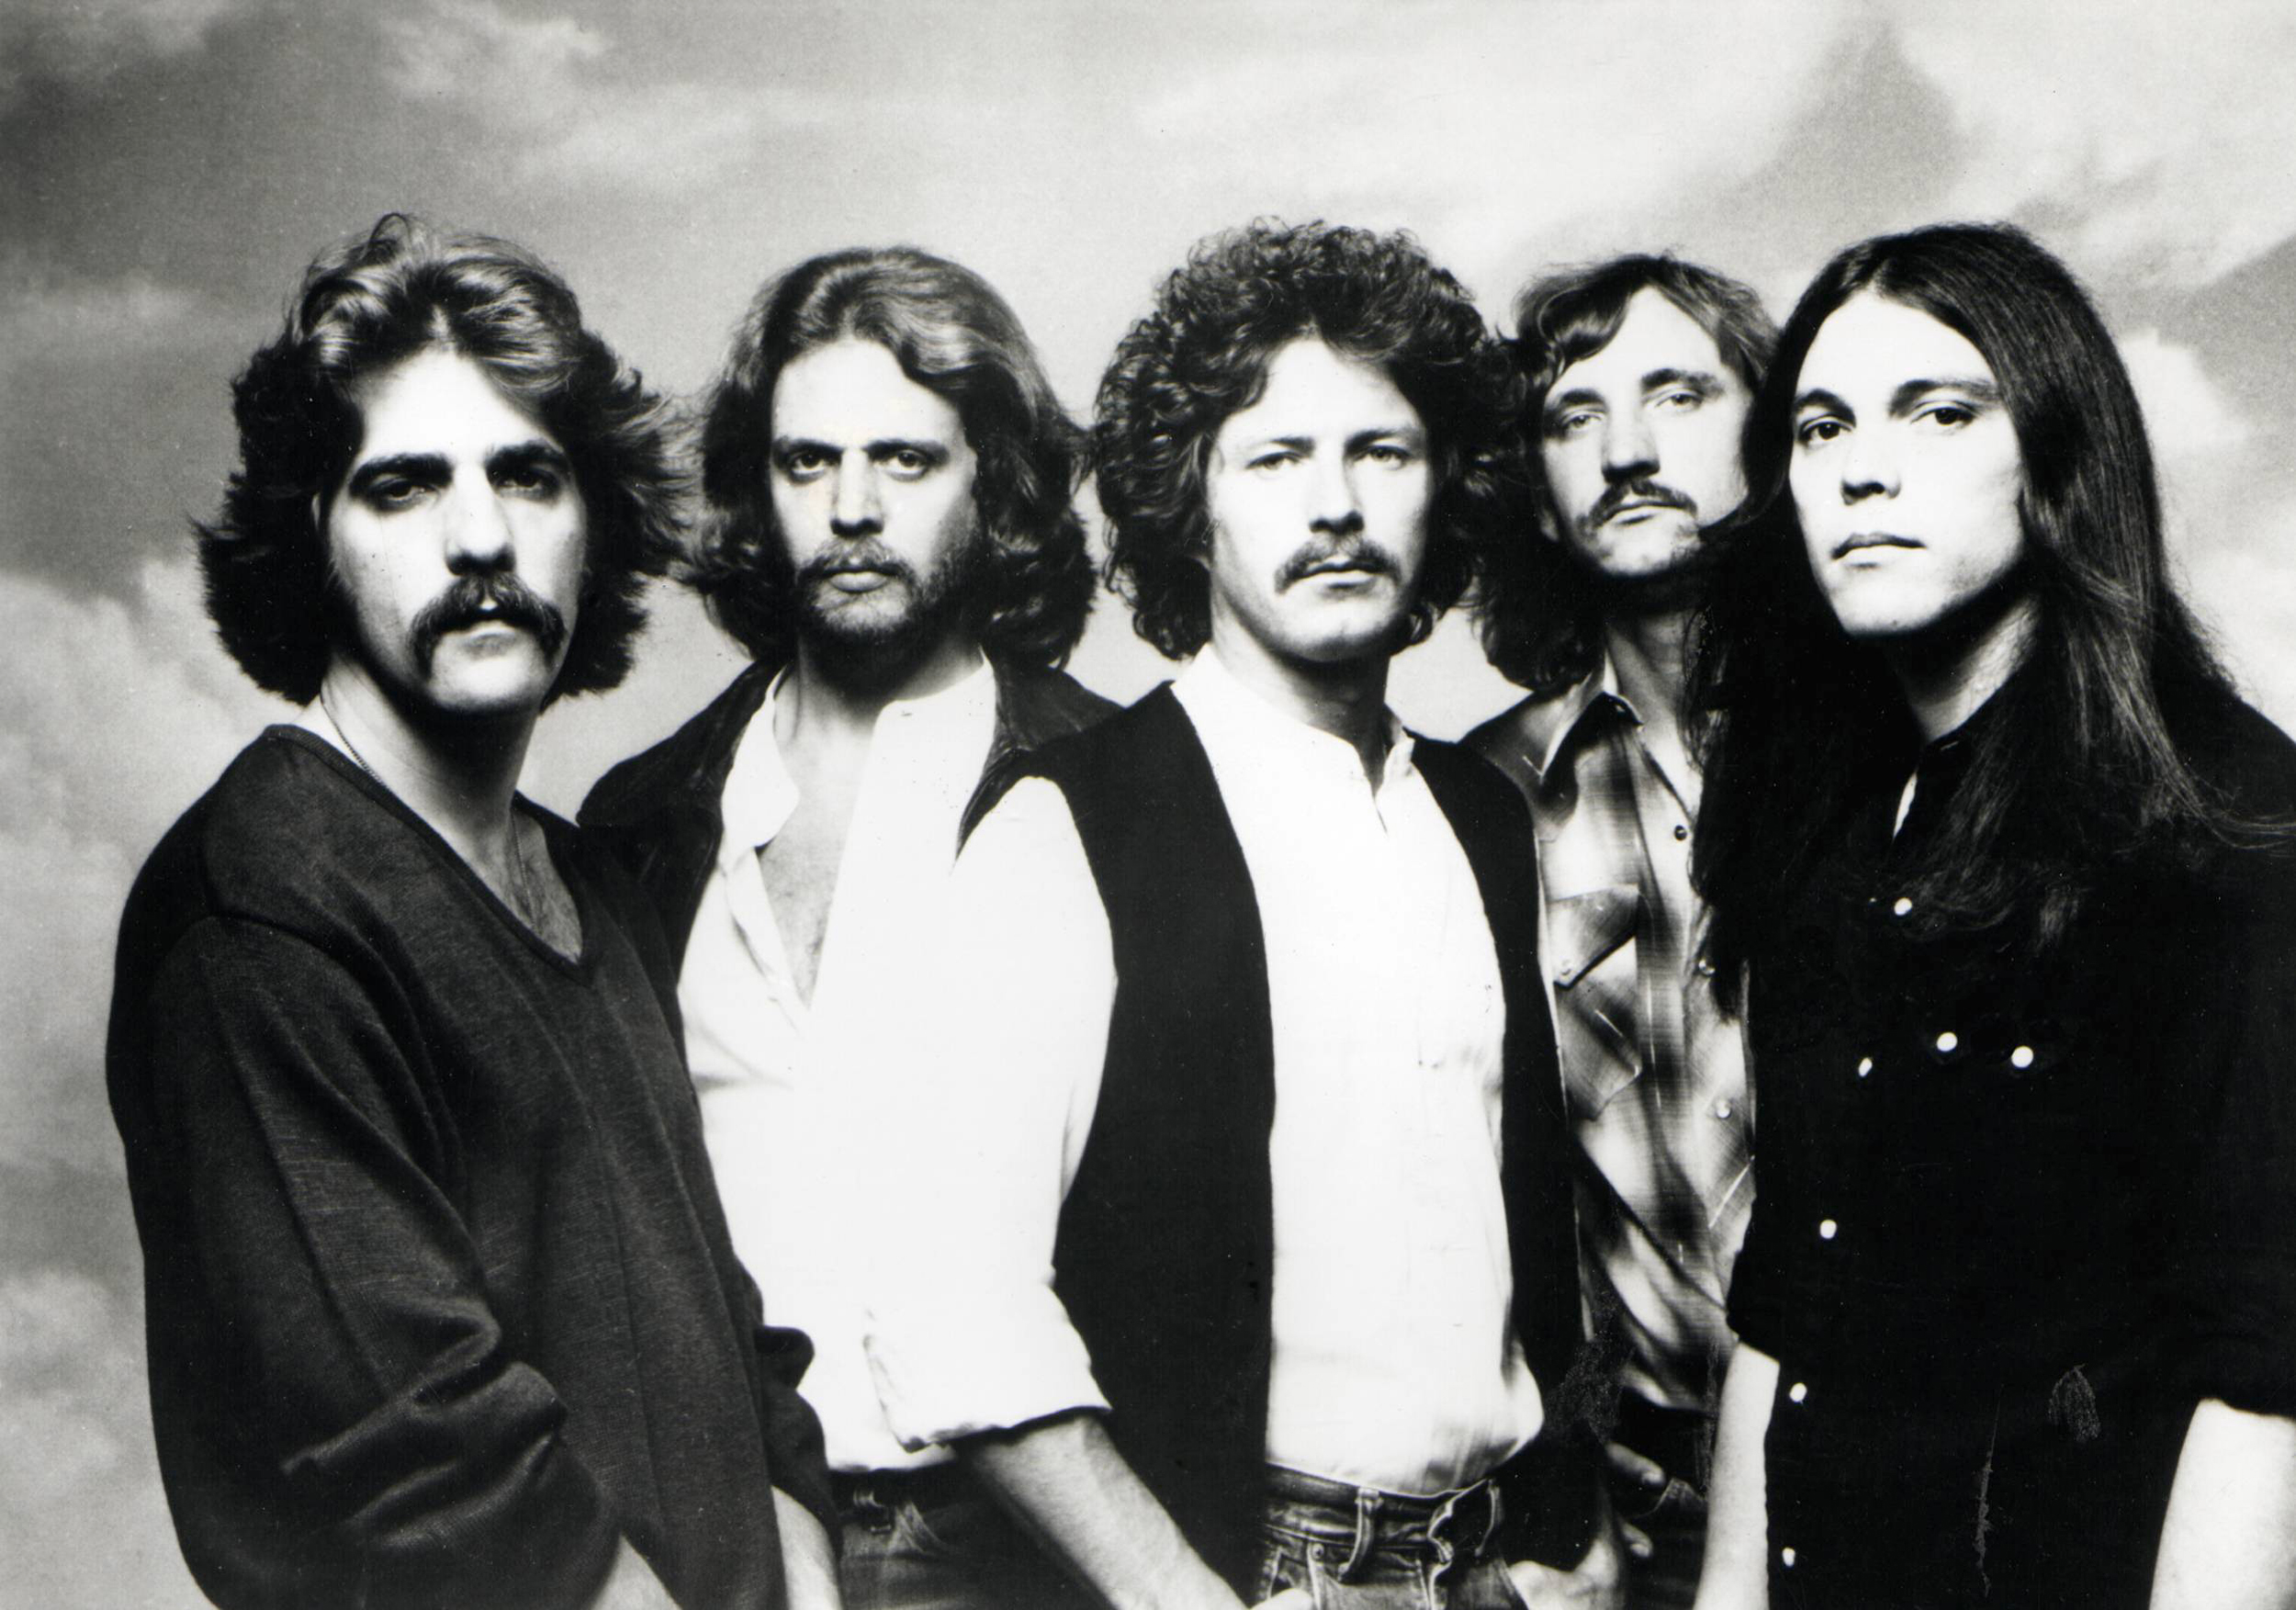 Passing Michael Jackson, the Eagles now have the best-selling album